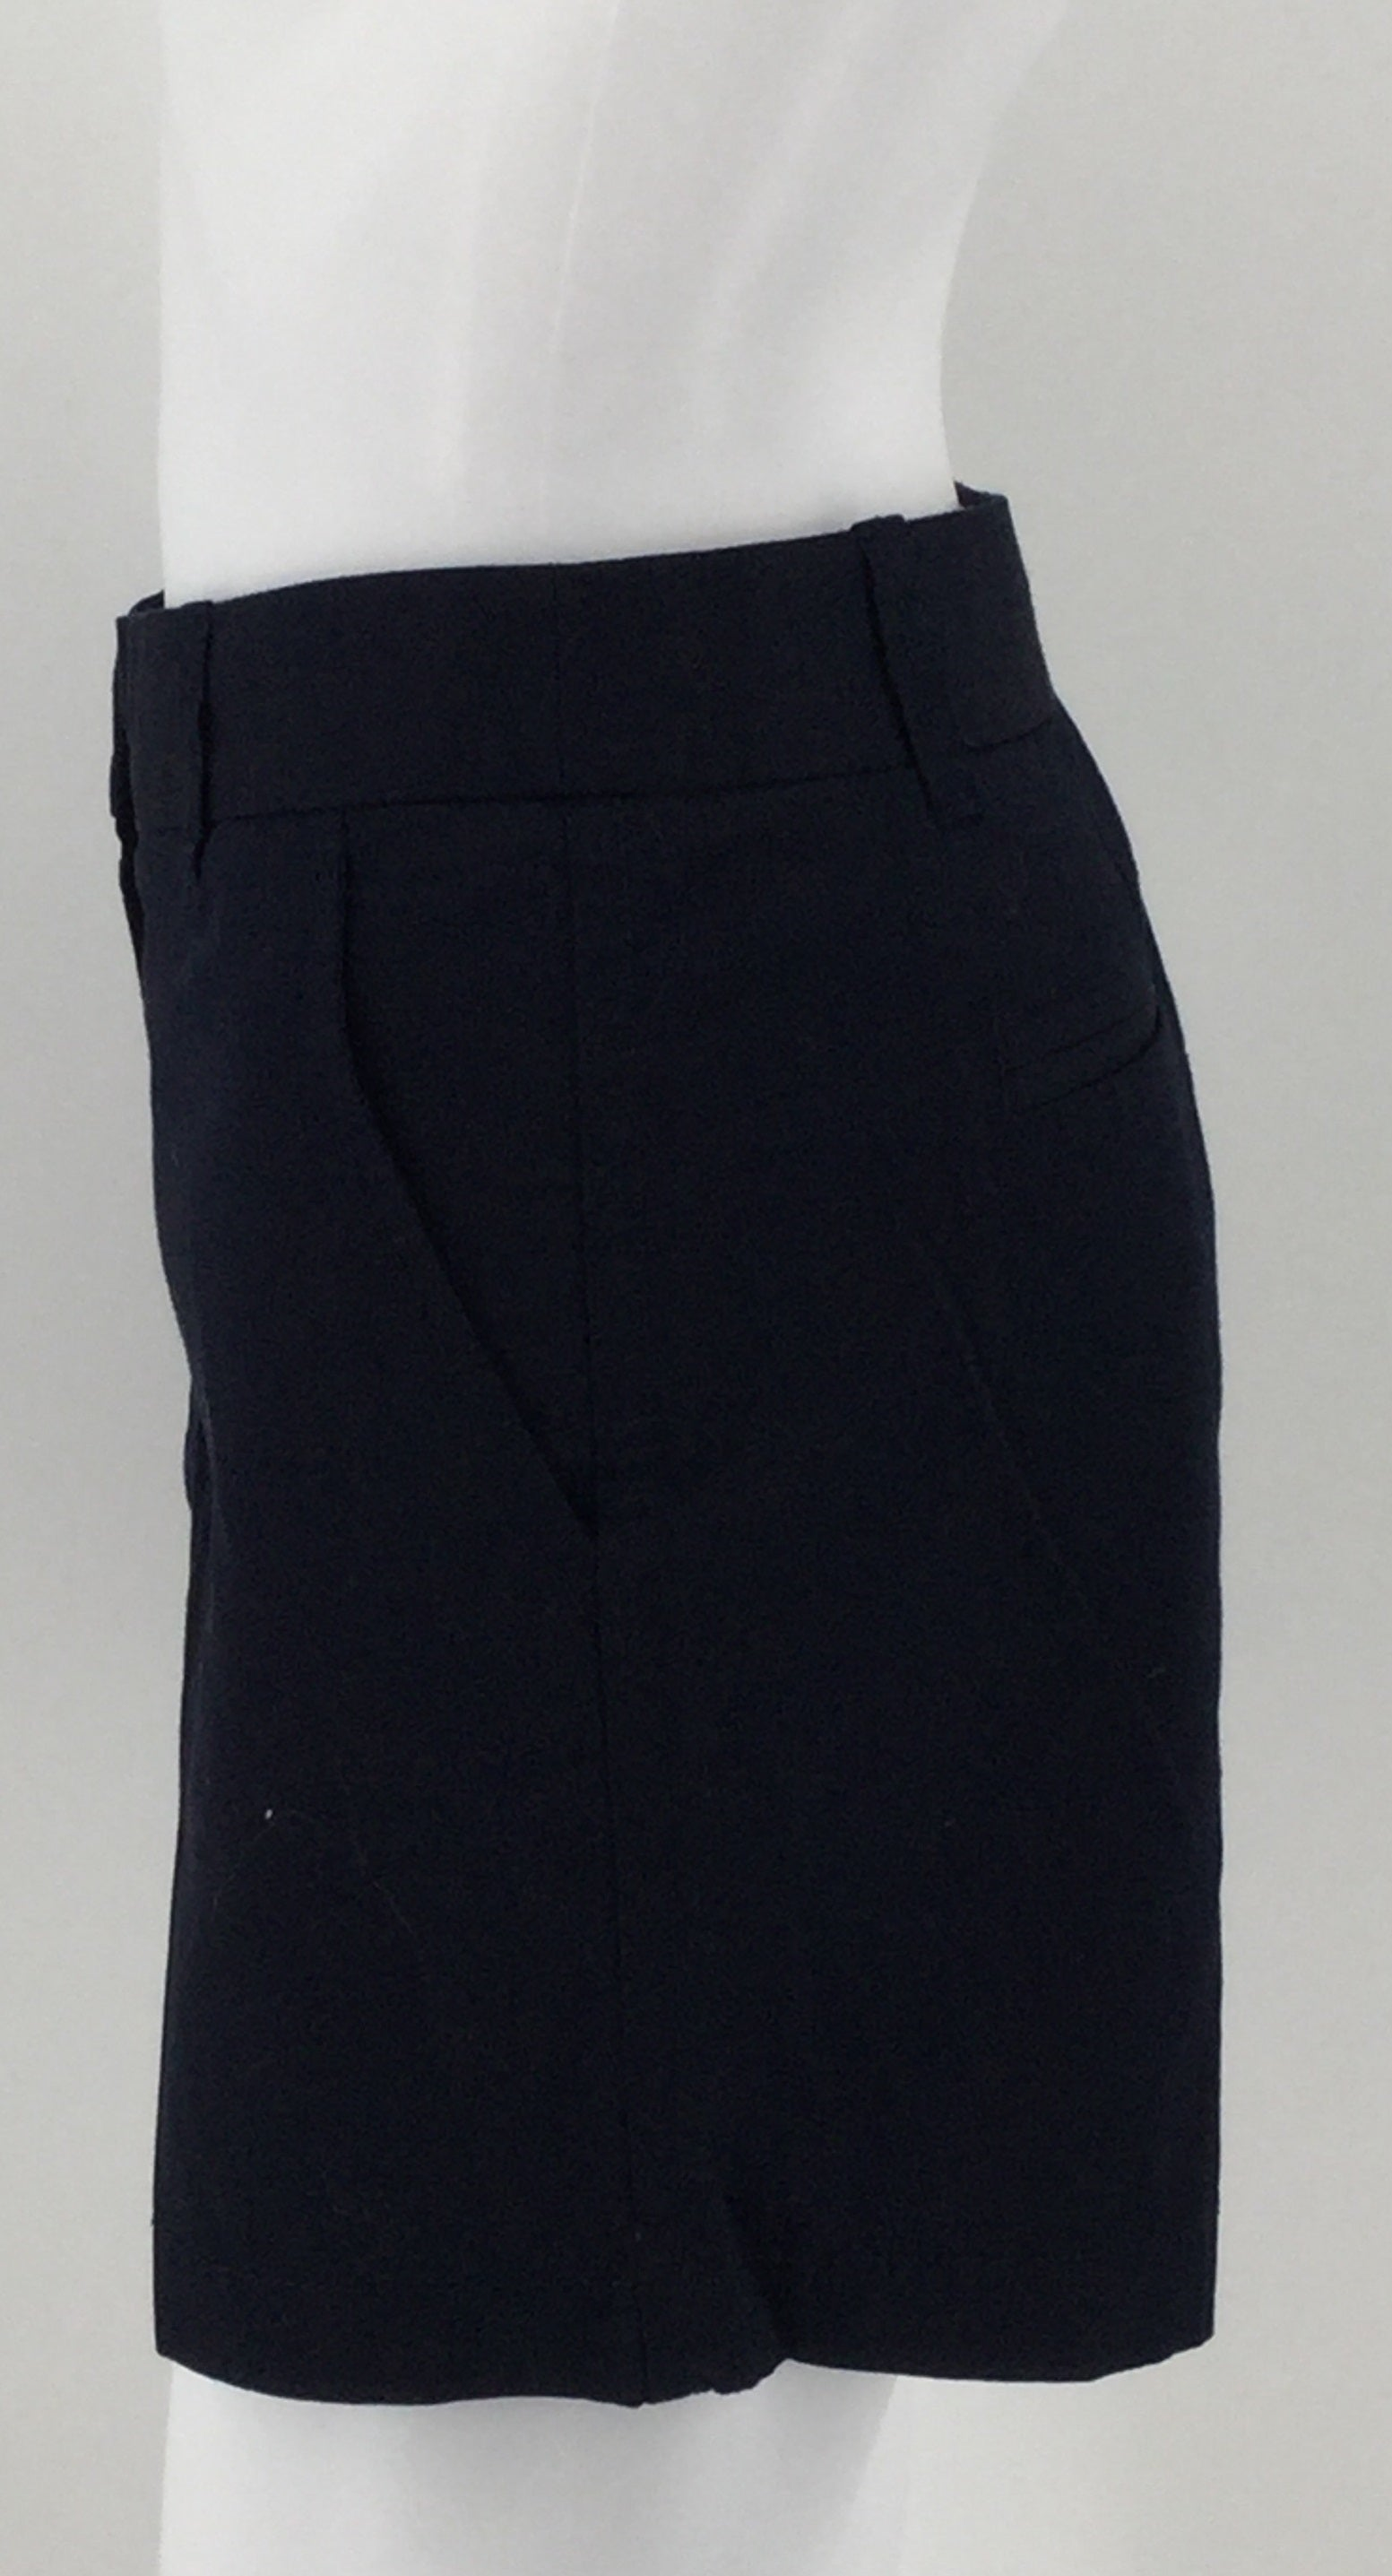 J. Crew Navy Blue Chino City Fit Shorts Size 8 Nwt Msrp $32.50 -   100% COTTON.  NAVY BLUE CHINO CITY FIT.  SIZE 8 INSEAM 5